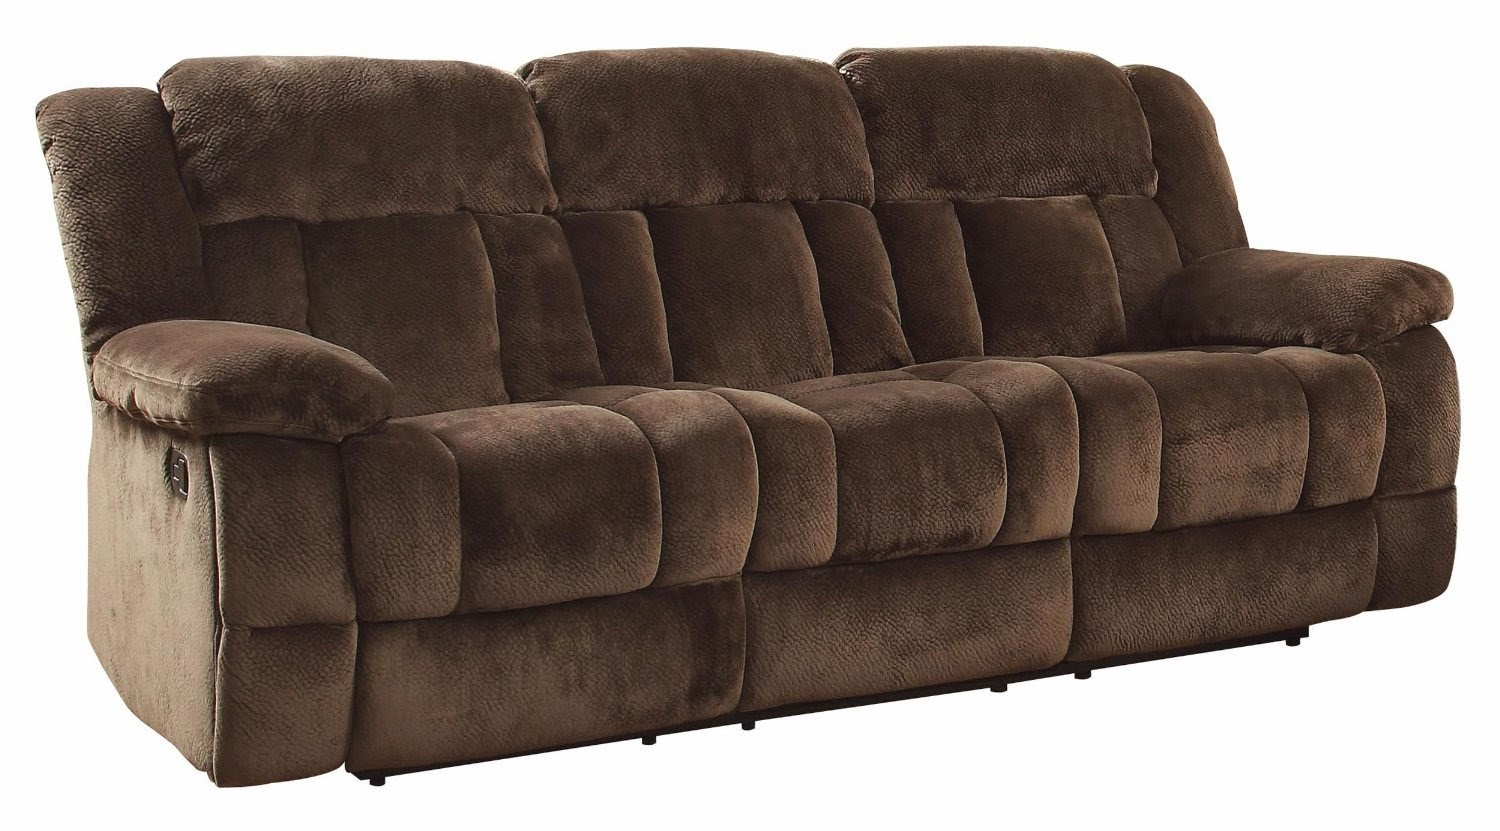 The Best Reclining Sofas Ratings Reviews: Eric Double ...